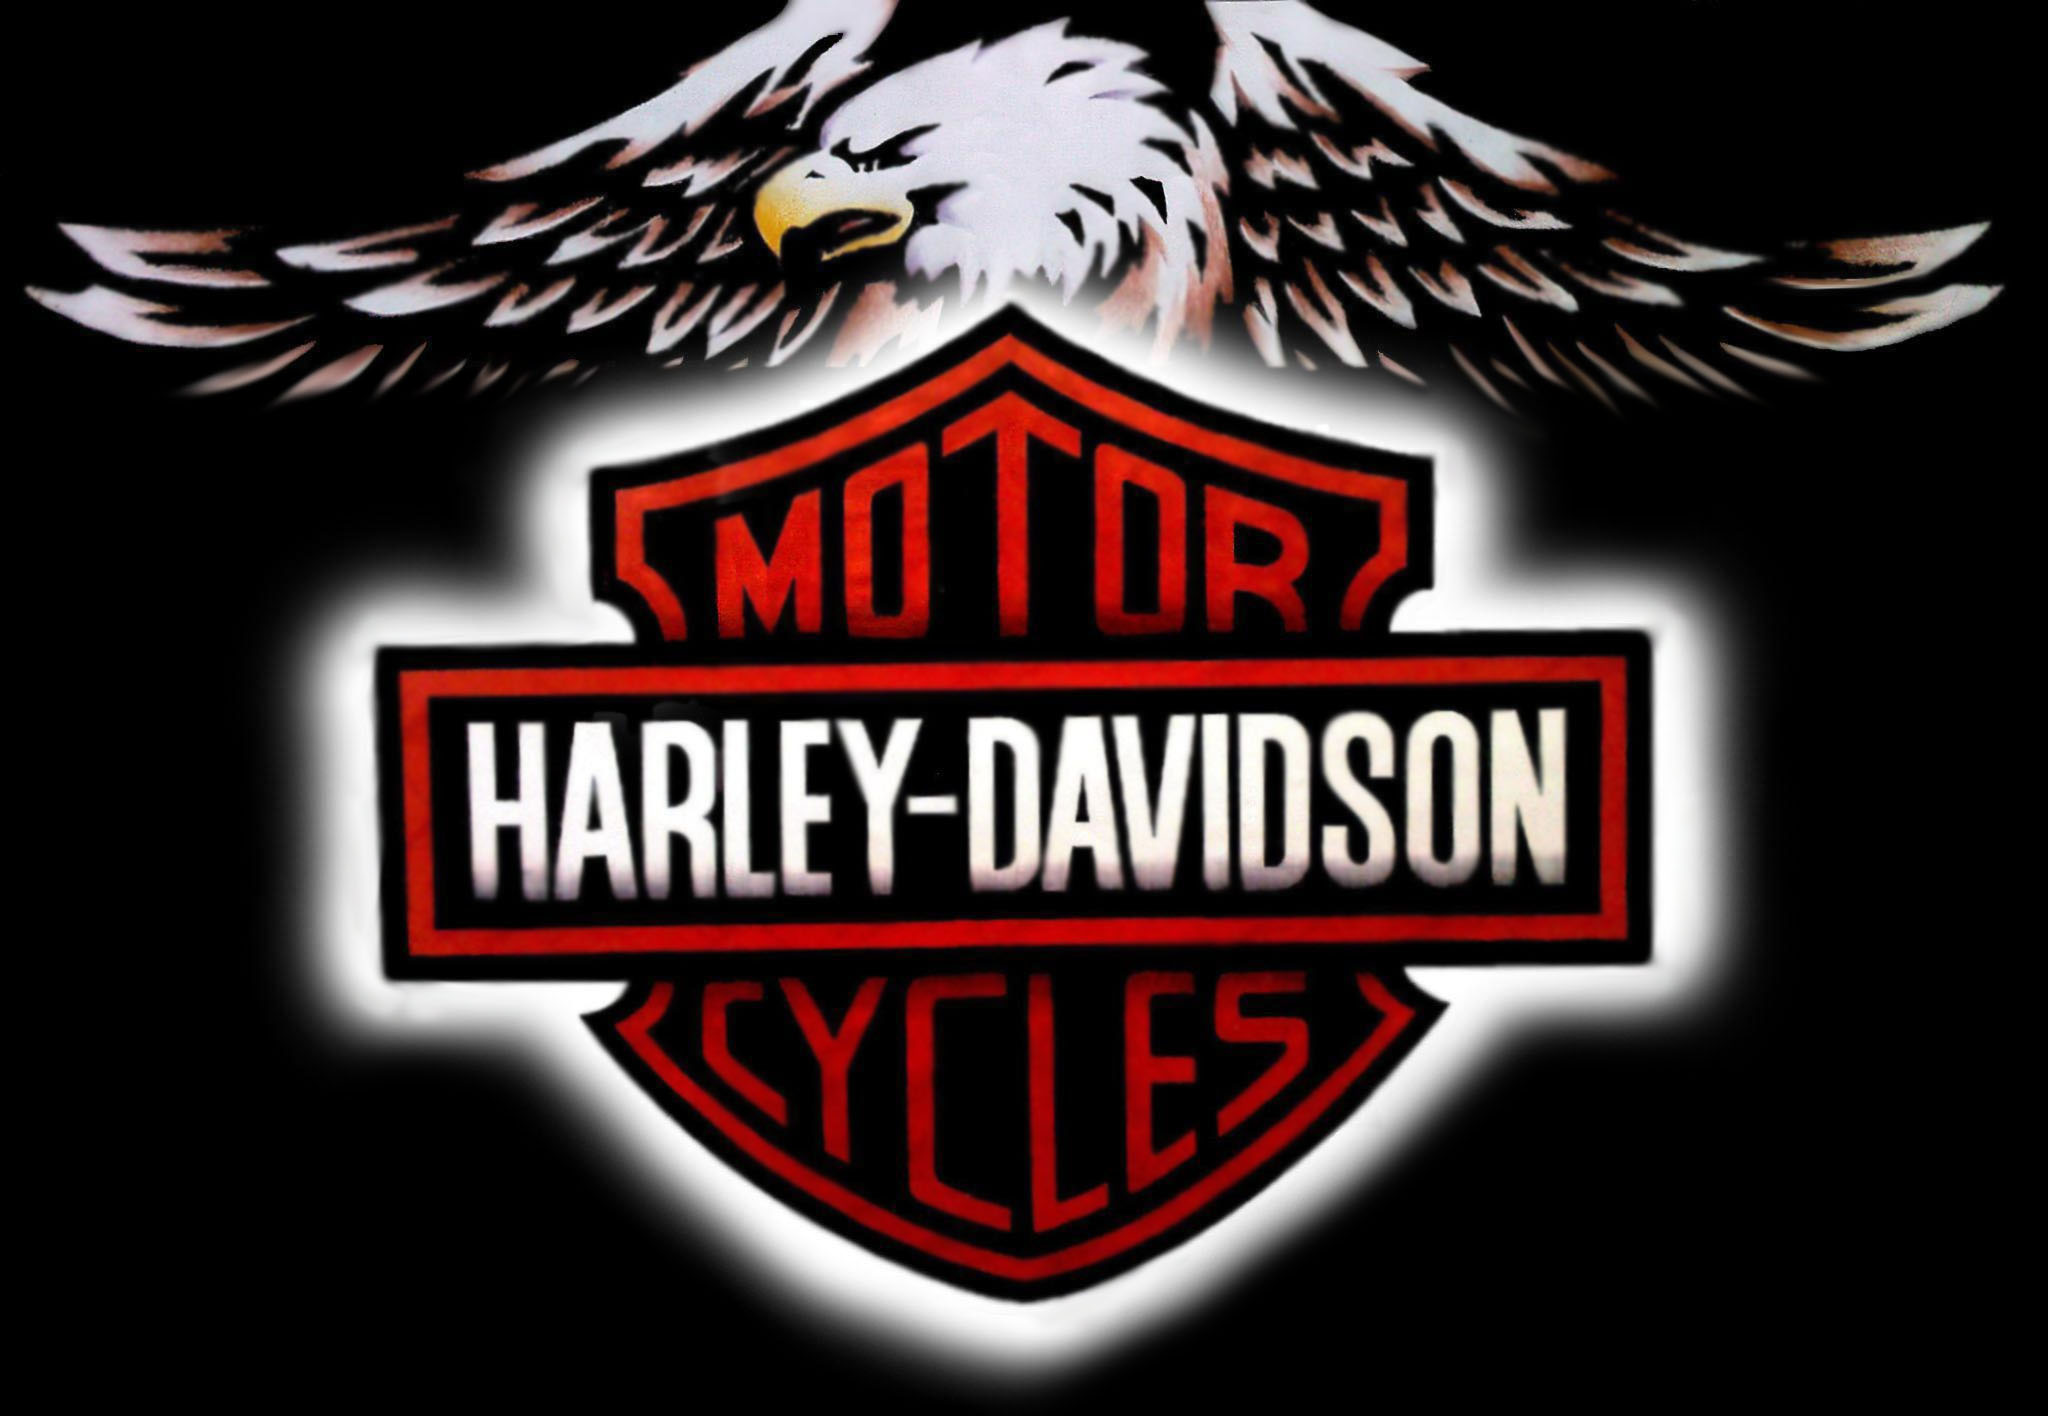 Harley Davidson Wallpaper IPad IPhone Wallpaper Bikes 86691 2048x1416